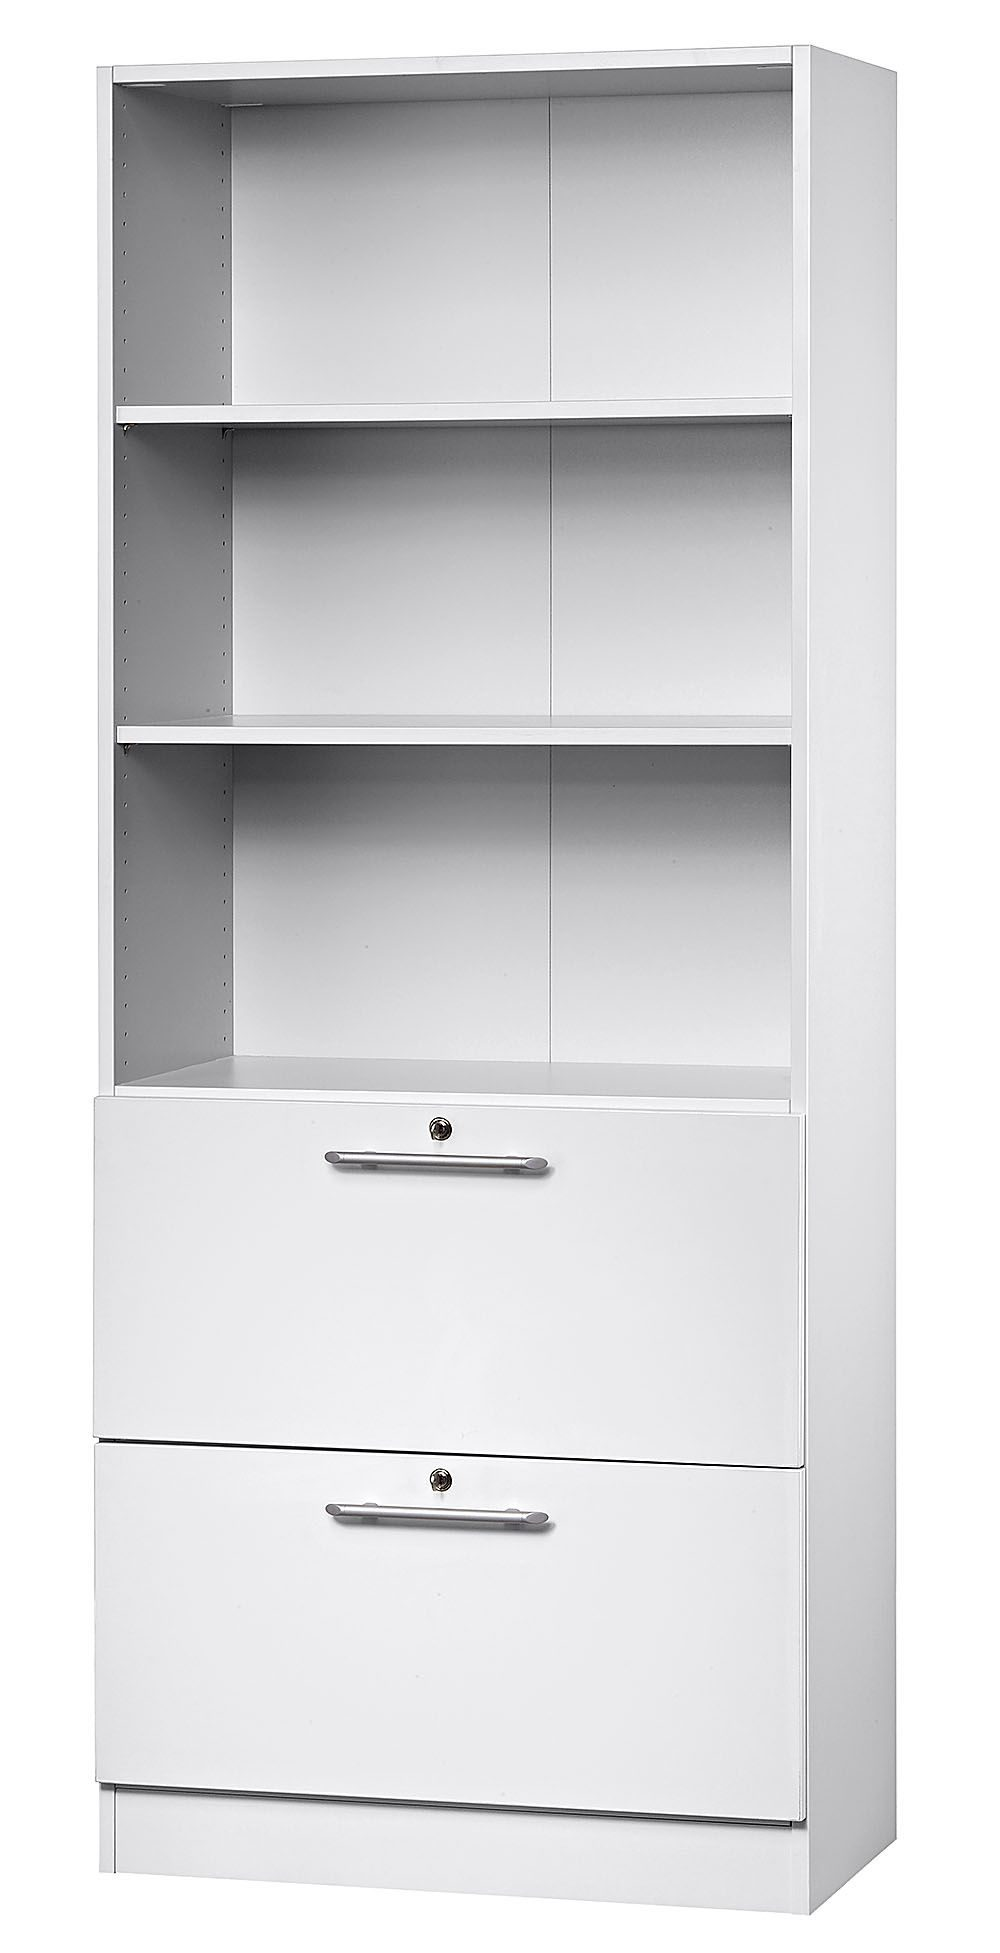 robuster b roschrank mit 2 separat abschlie baren din a4 h ngeregisterschubladen und 2. Black Bedroom Furniture Sets. Home Design Ideas